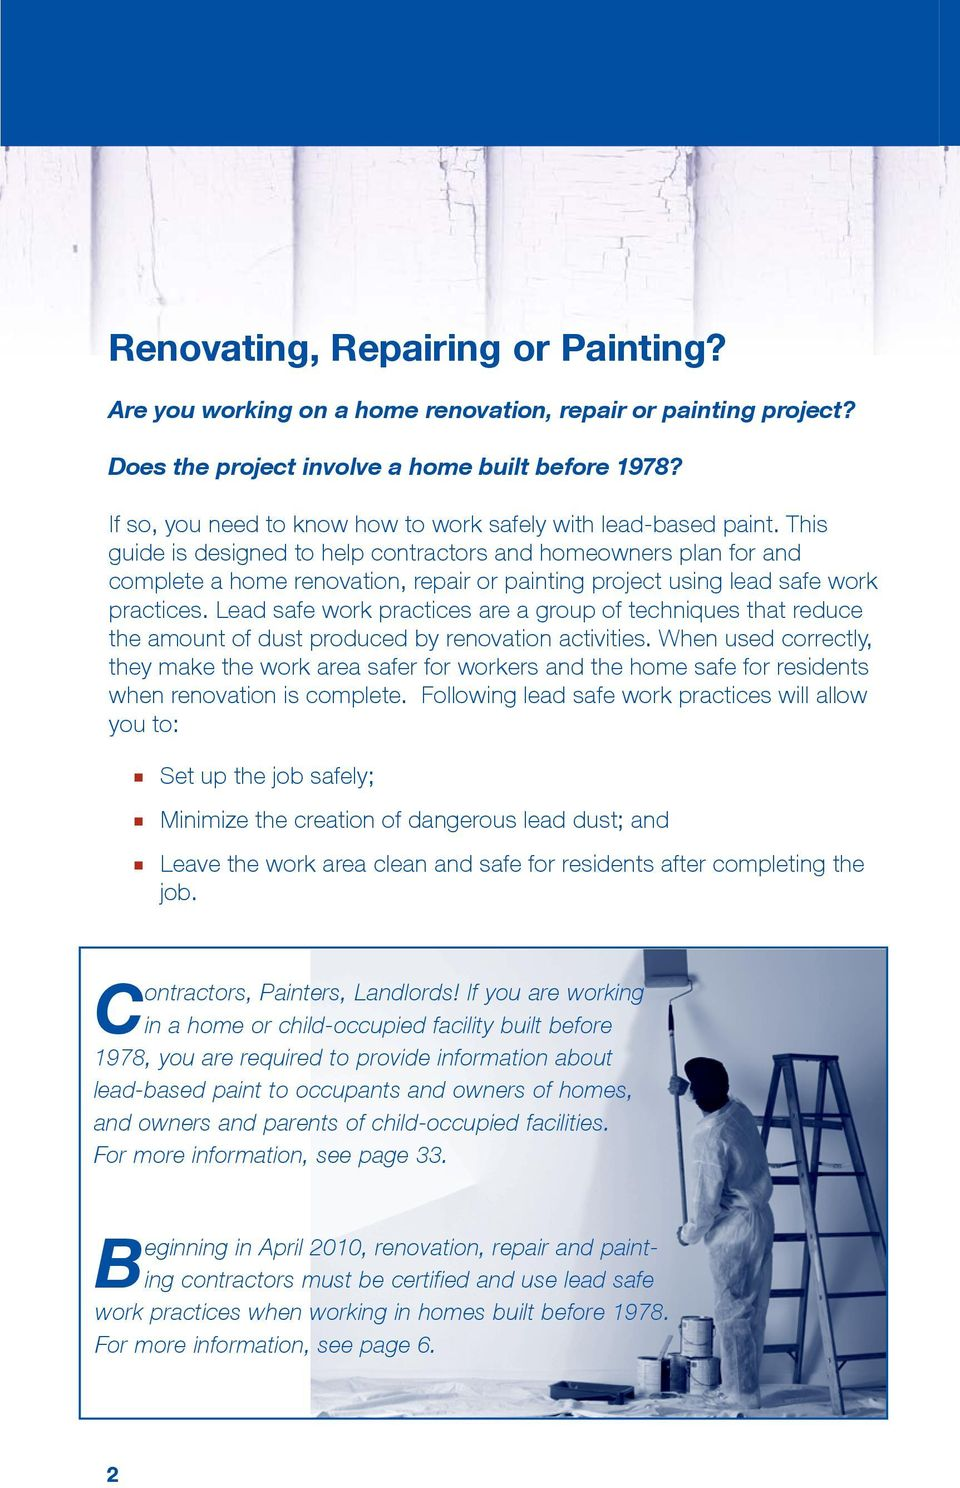 This guide is designed to help contractors and homeowners plan for and complete a home renovation, repair or painting project using lead safe work practices.